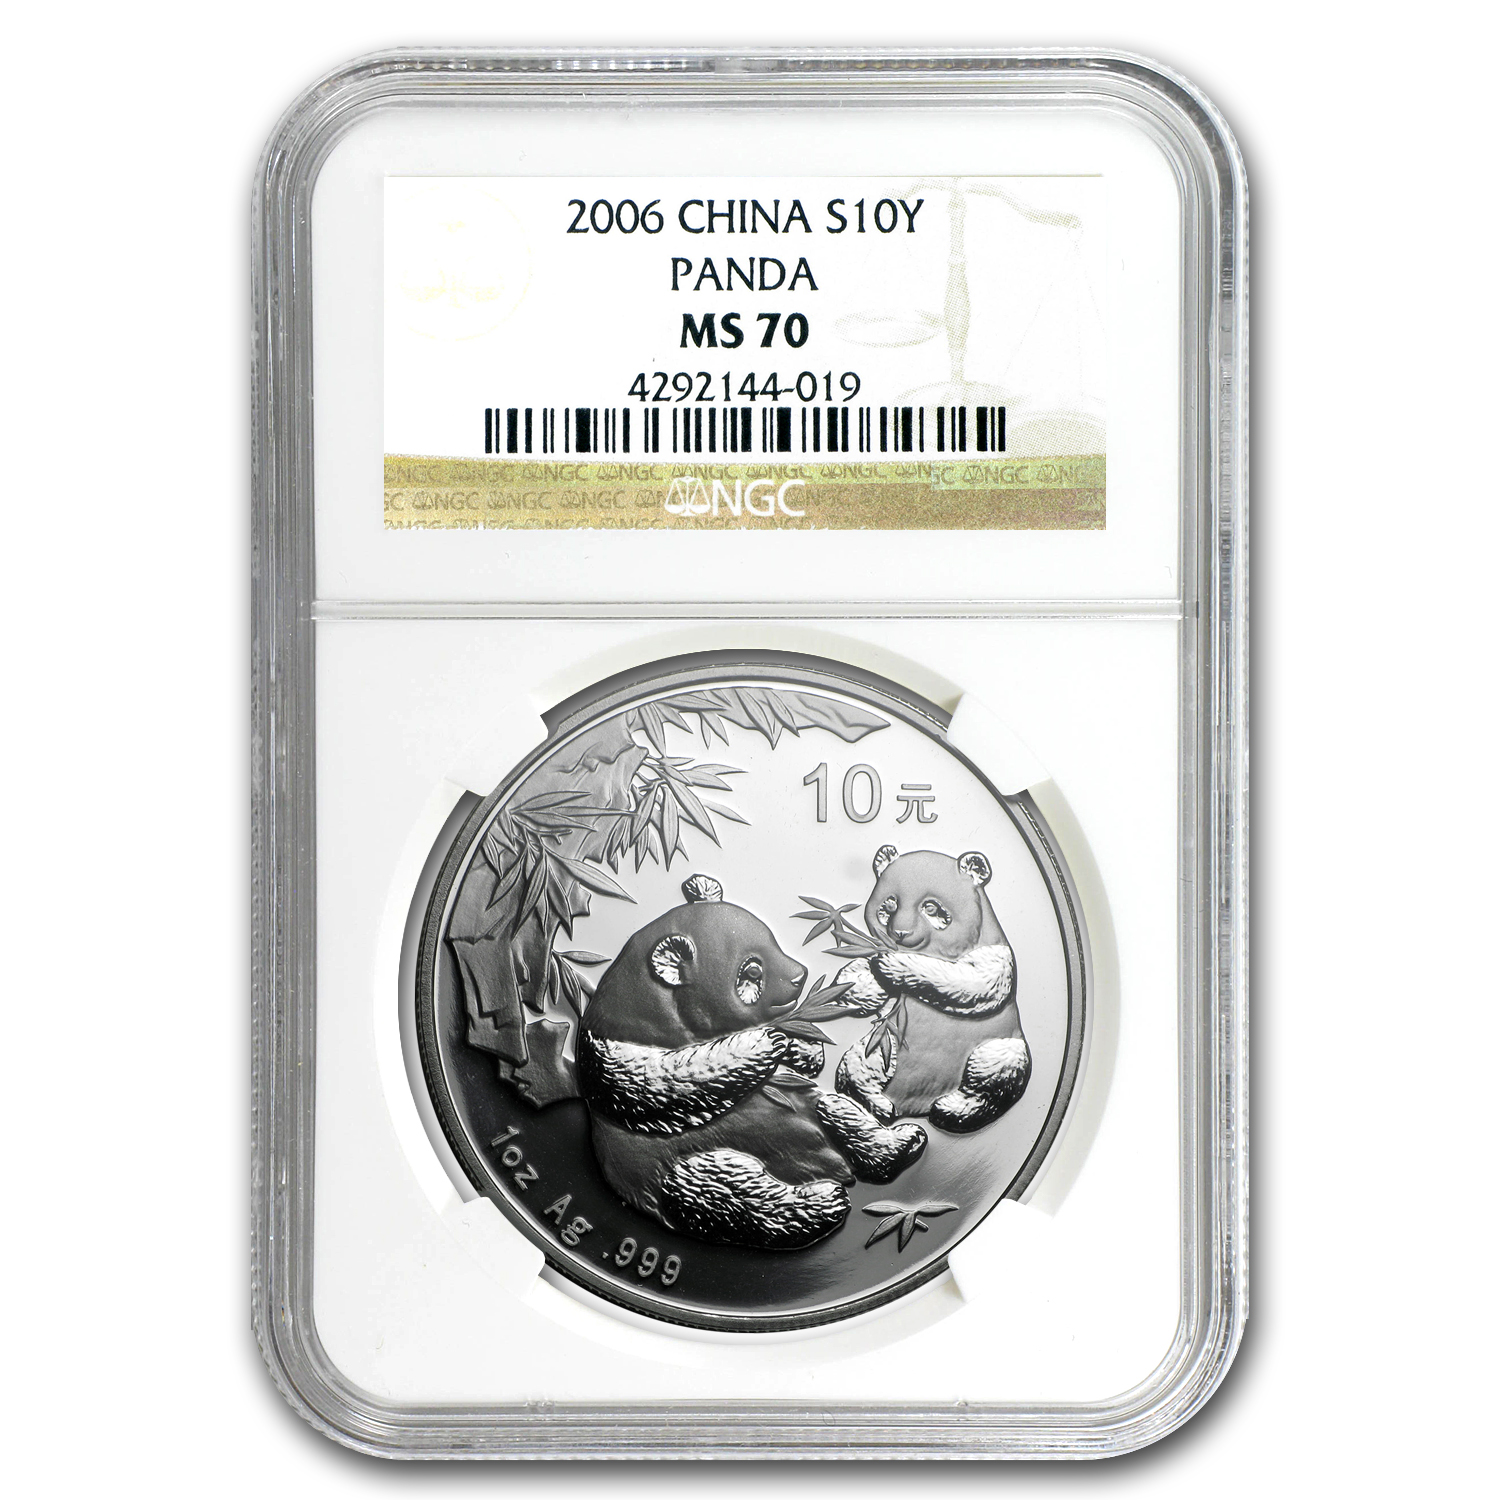 2006 China 1 oz Silver Panda MS-70 NGC